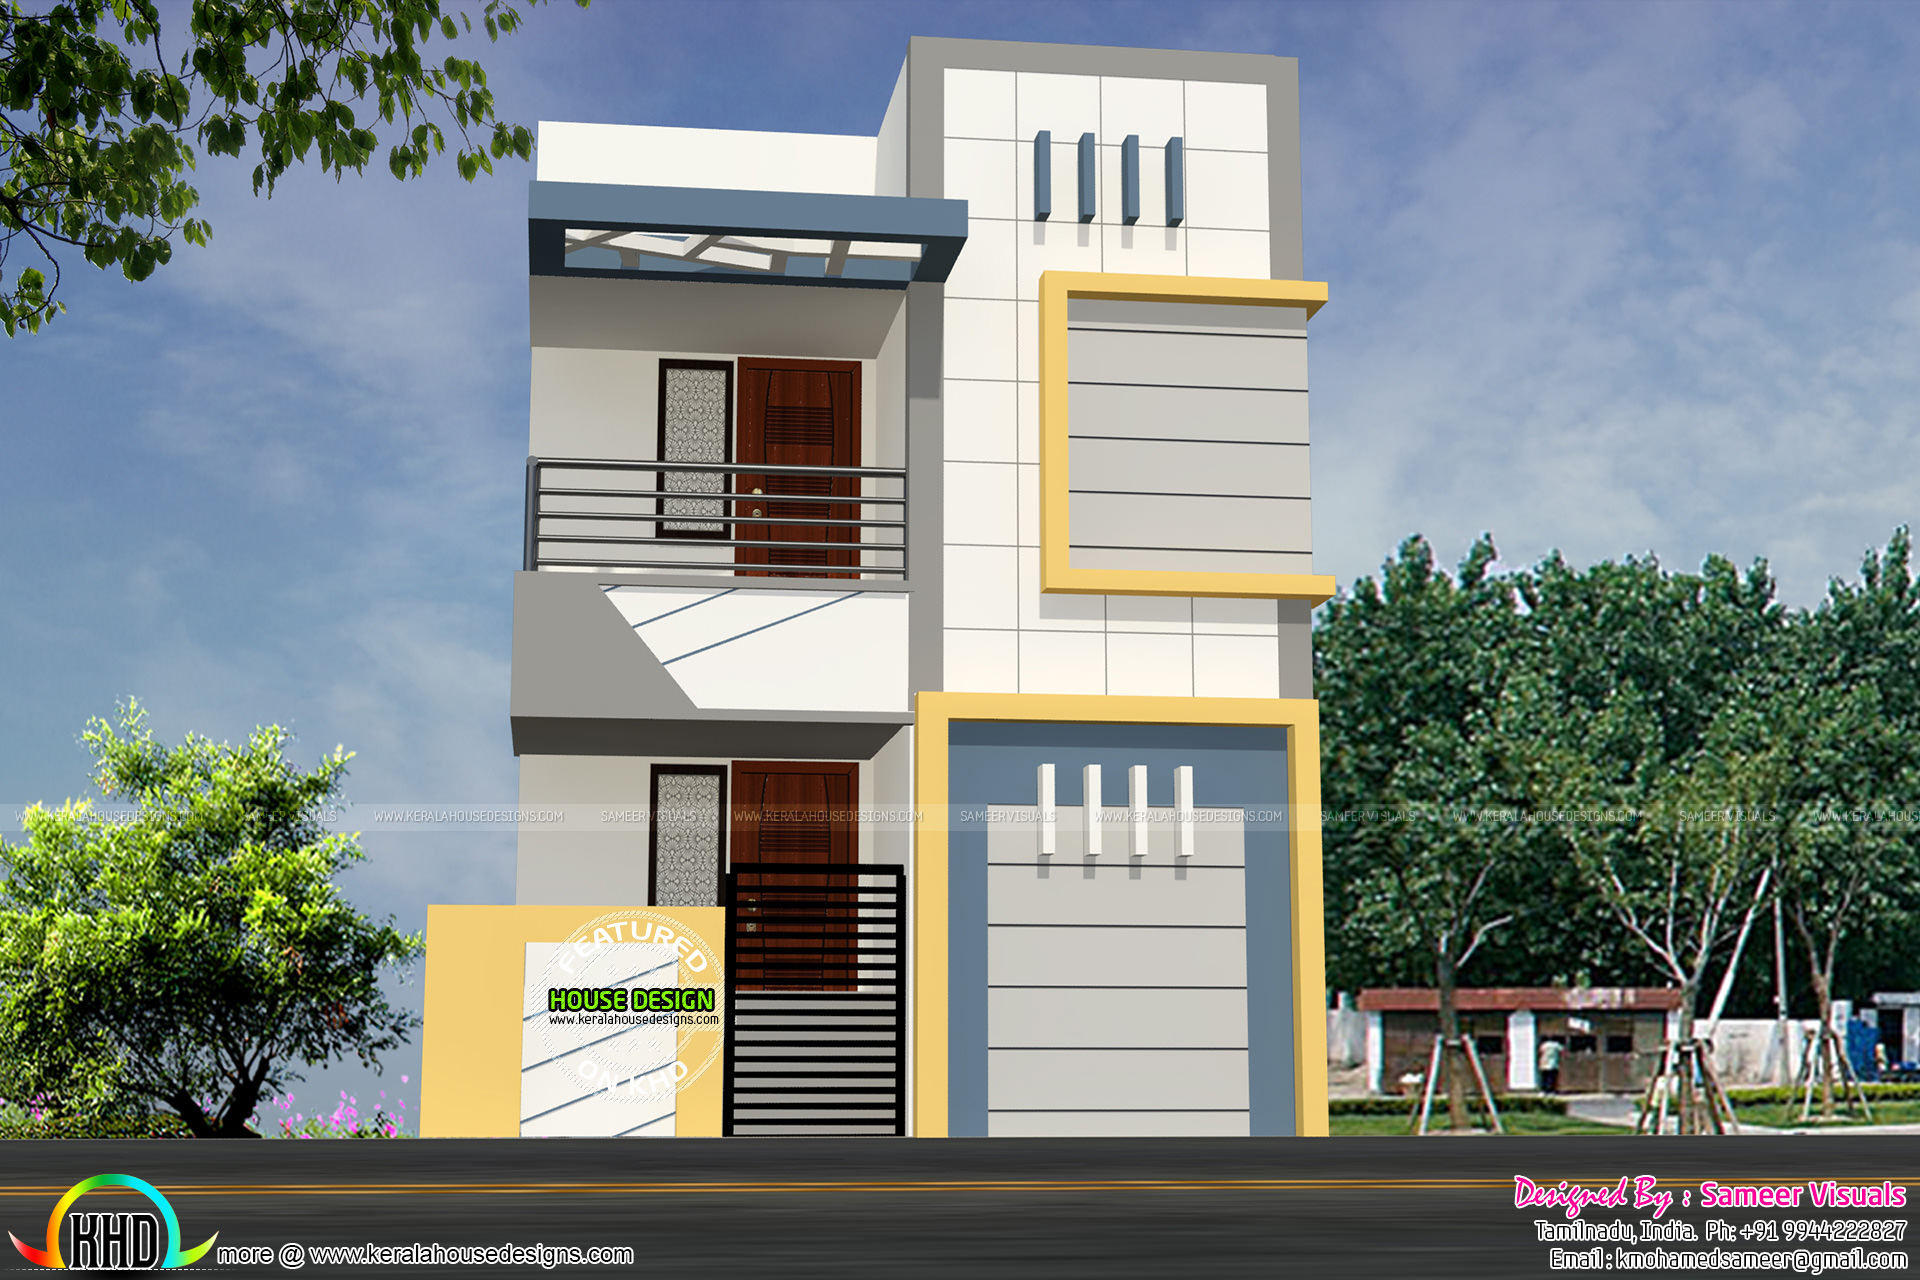 16 feet width house plan architecture kerala home design for Architecture design small house india